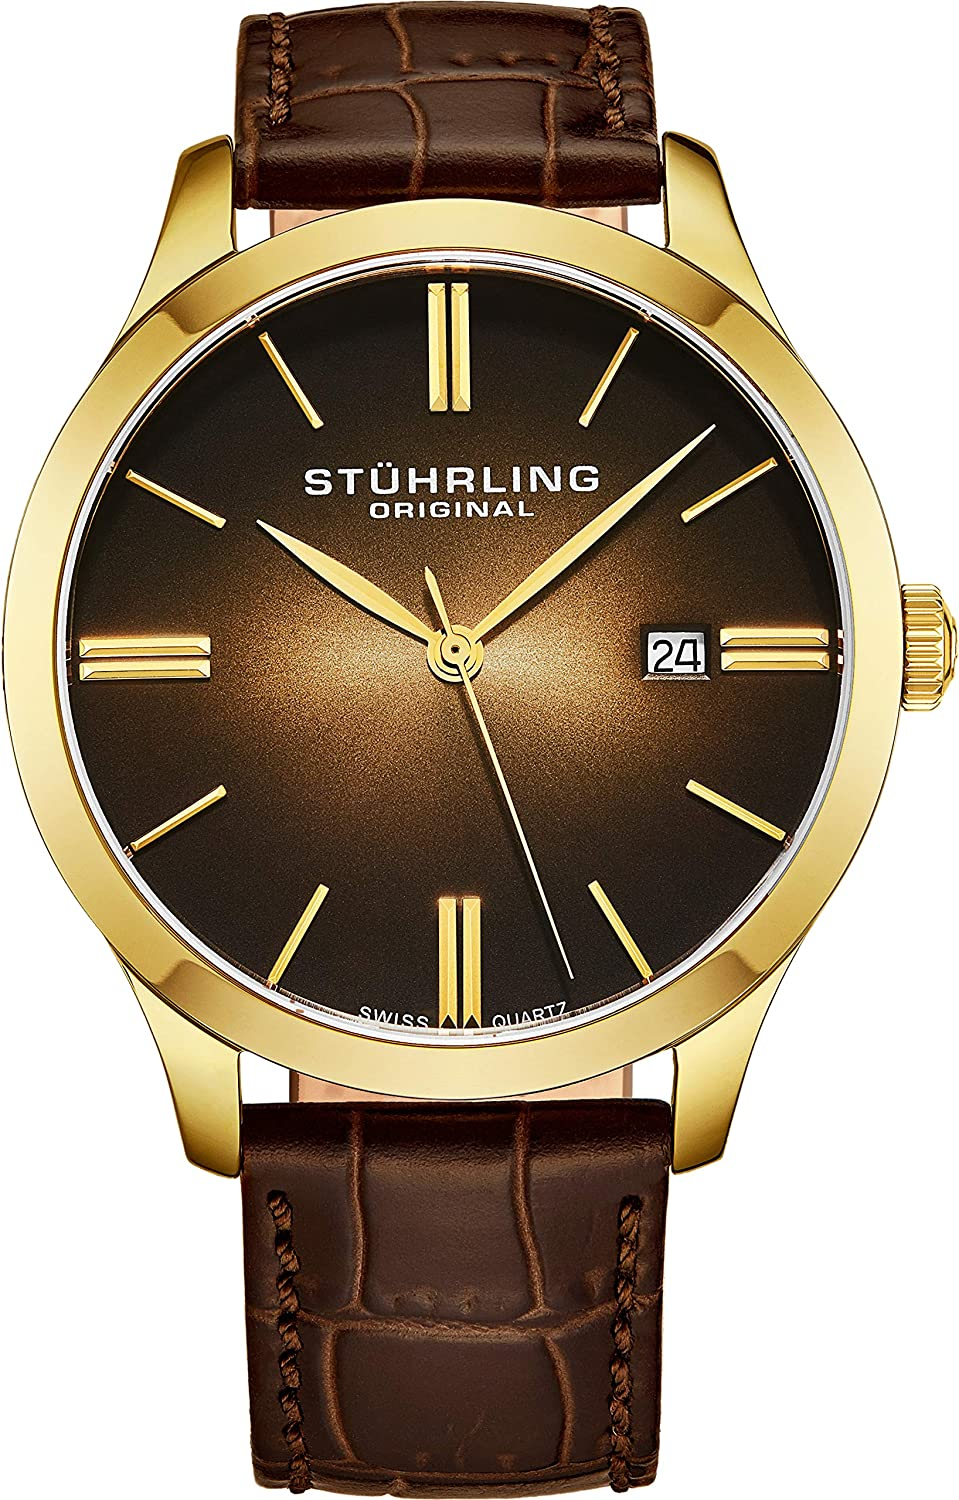 Stuhrling Original Classic Cuvette II Mens Watch – Swiss Quartz Analog Date Wrist Watch for Men – Stainless Steel Mens Designer Watch with Leather Strap 490 Series